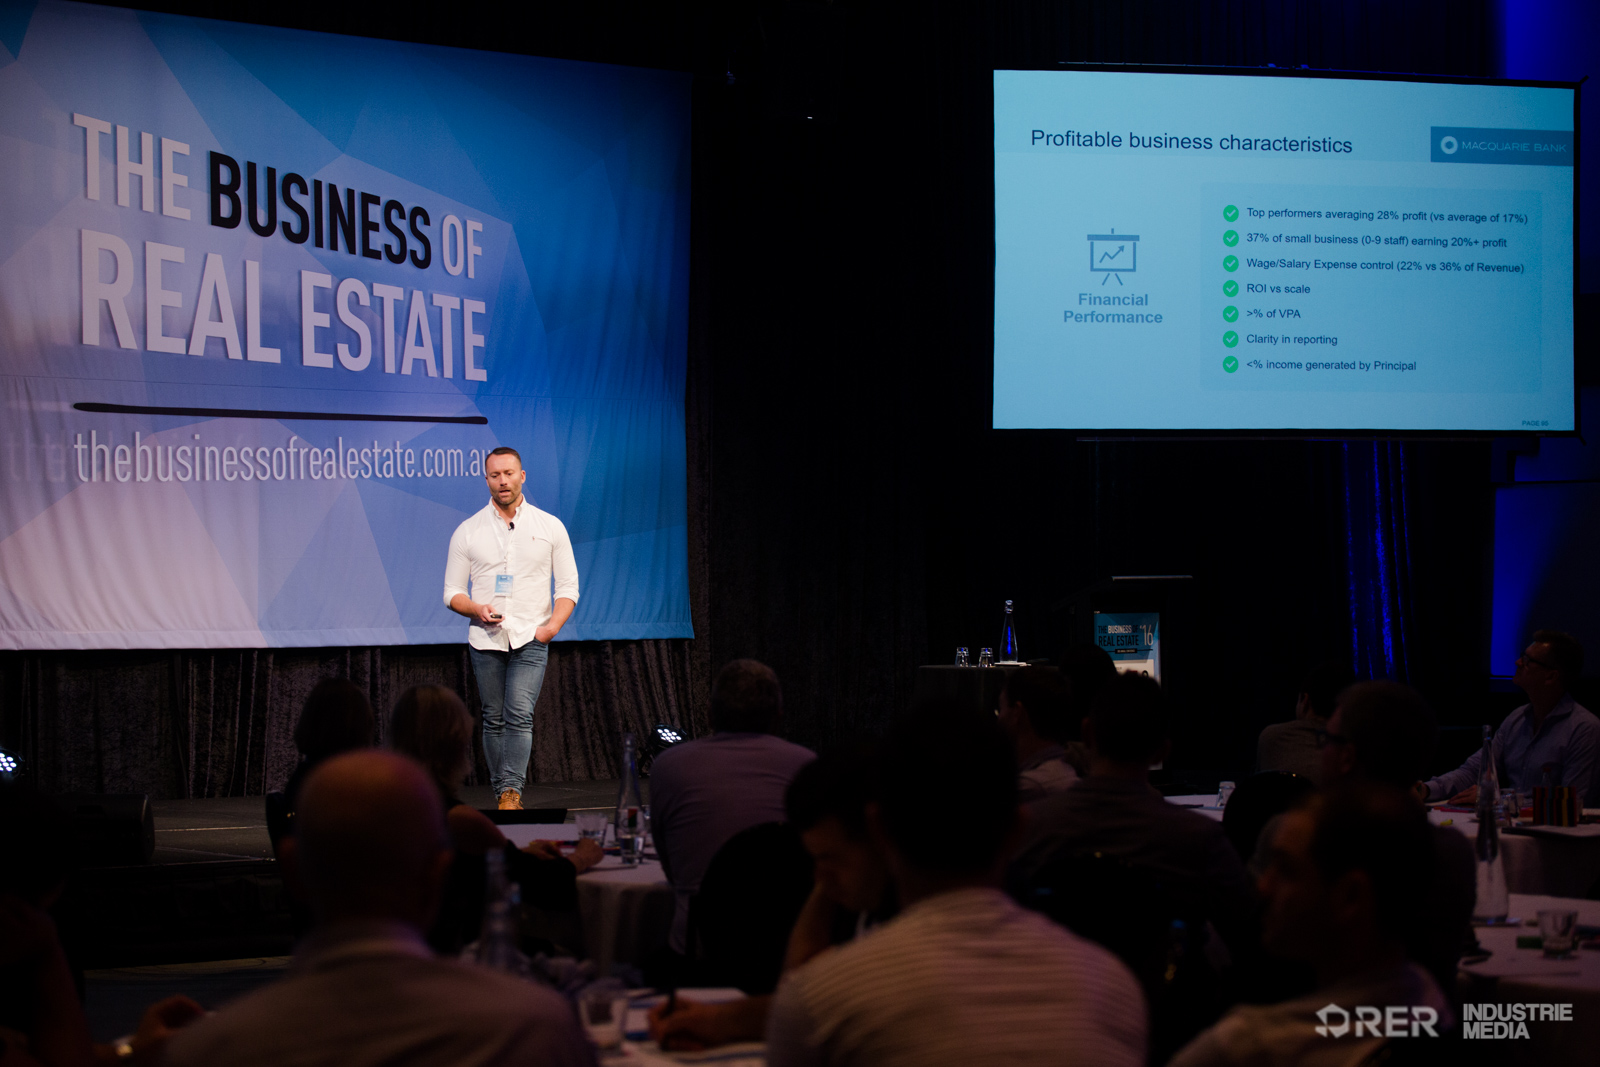 https://www.thebusinessofrealestate.com.au/wp-content/uploads/2016/09/RER_BUSINESS_OF_REAL_ESTATE_DAY_2-54.jpg